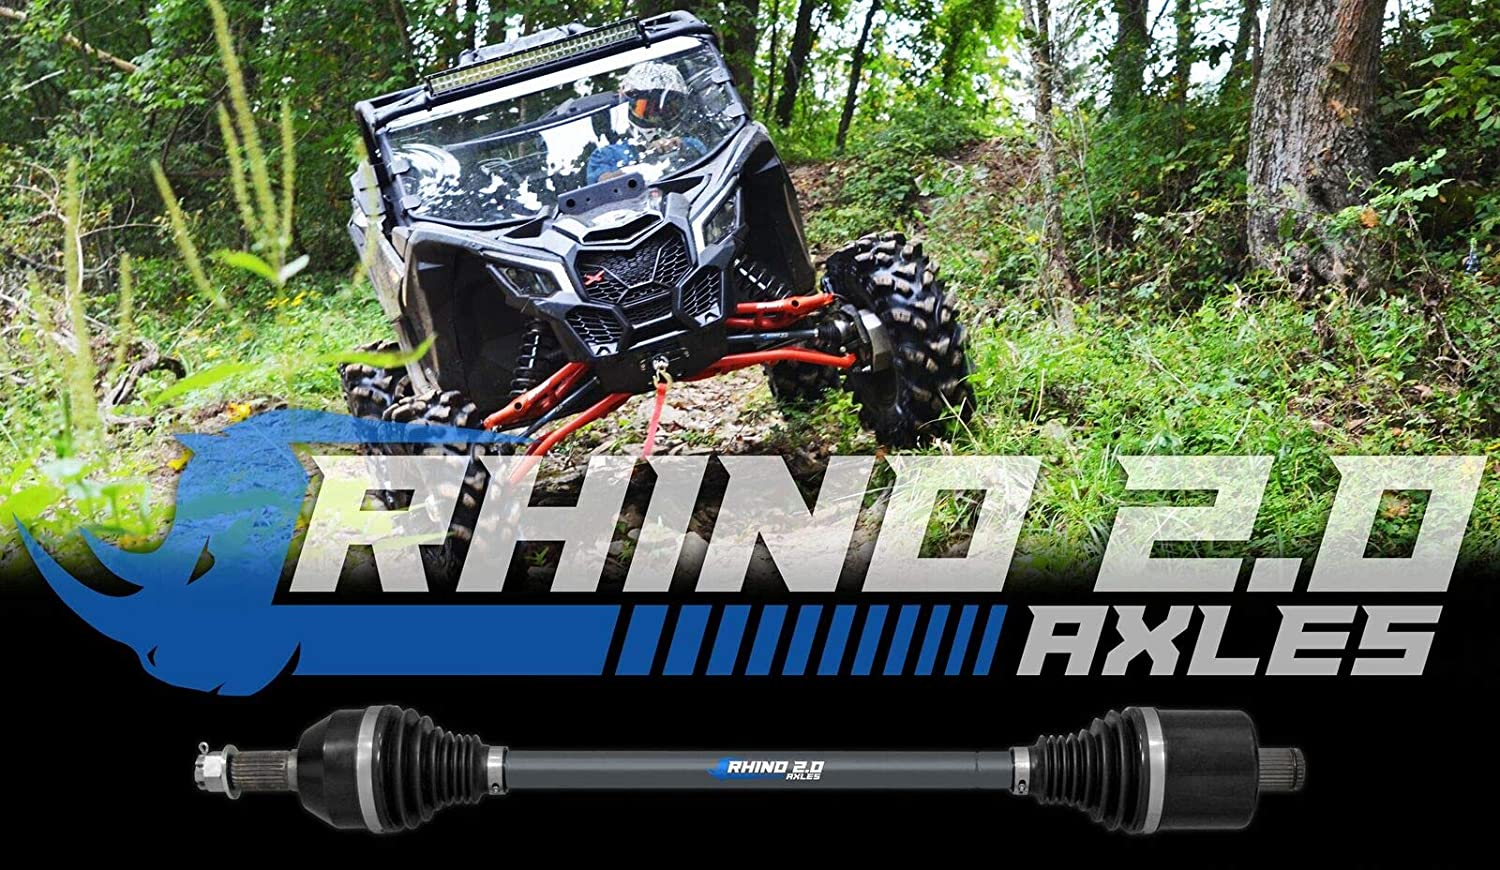 Stock Length 2X Stronger Than Stock! FRONT RIGHT SuperATV Heavy Duty Rhino 2.0 Axle for Can-Am Maverick Turbo//X DS//X RS//MAX